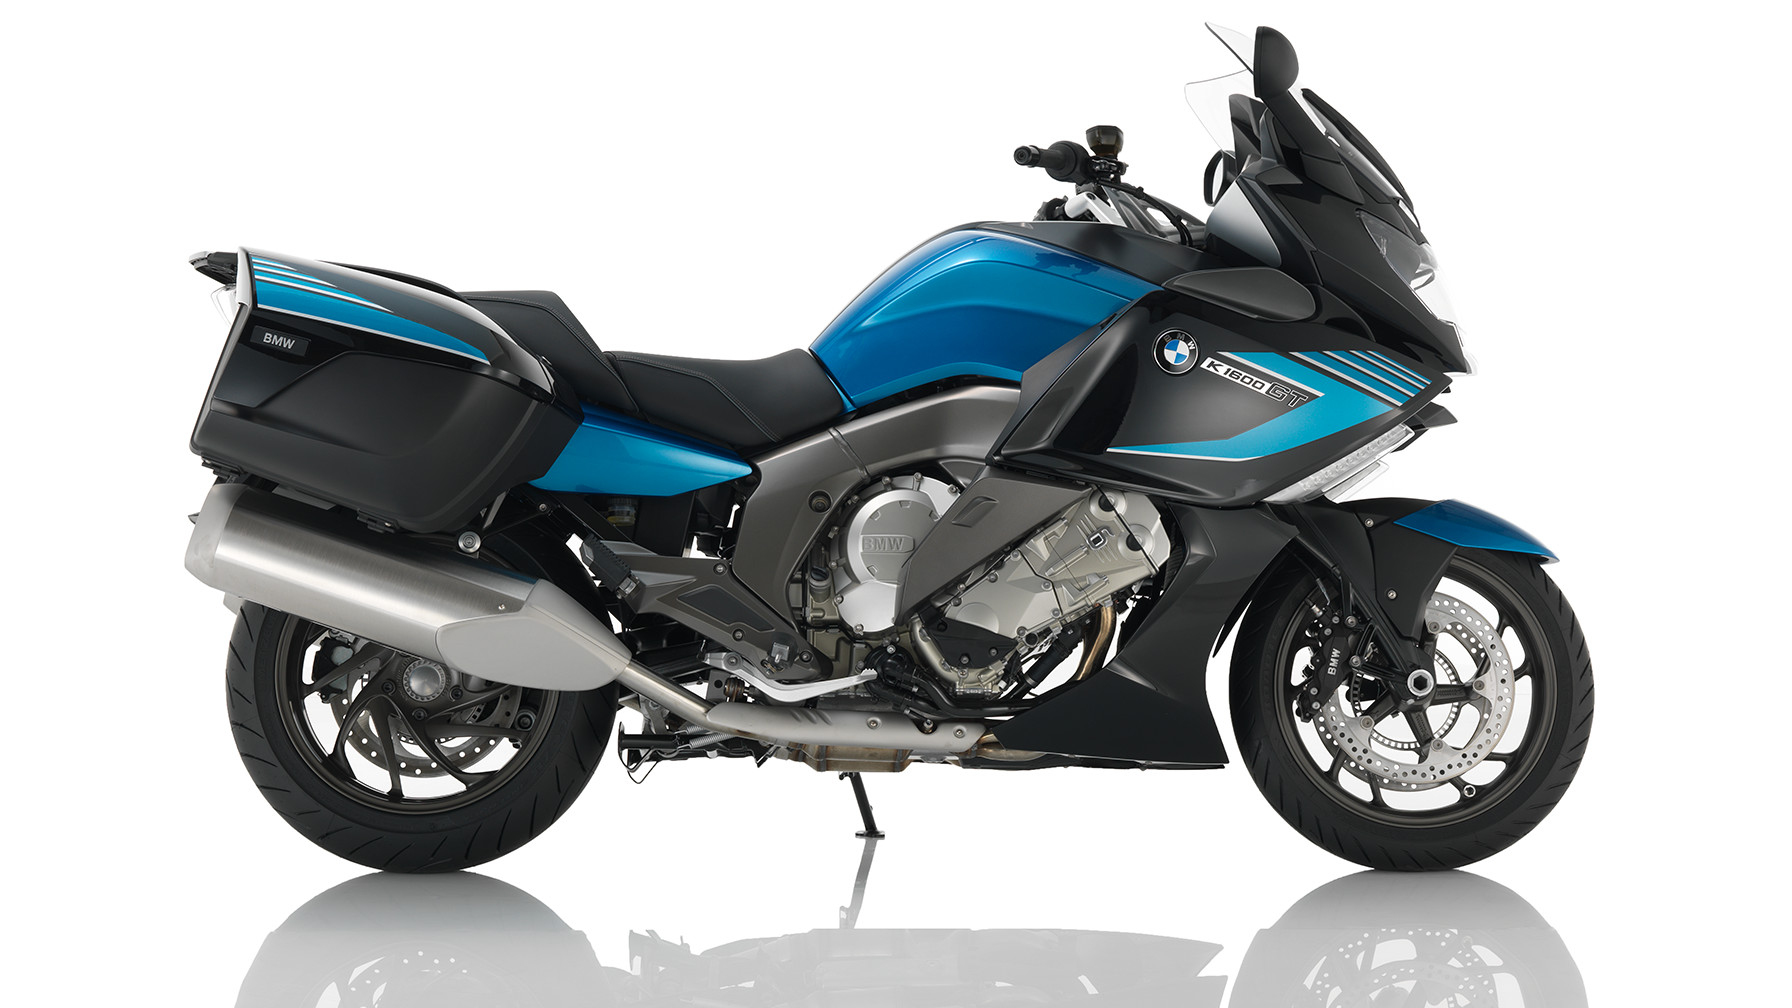 2015 2016 bmw k 1600 gt k 1600 gtl k 1600 gtl. Black Bedroom Furniture Sets. Home Design Ideas